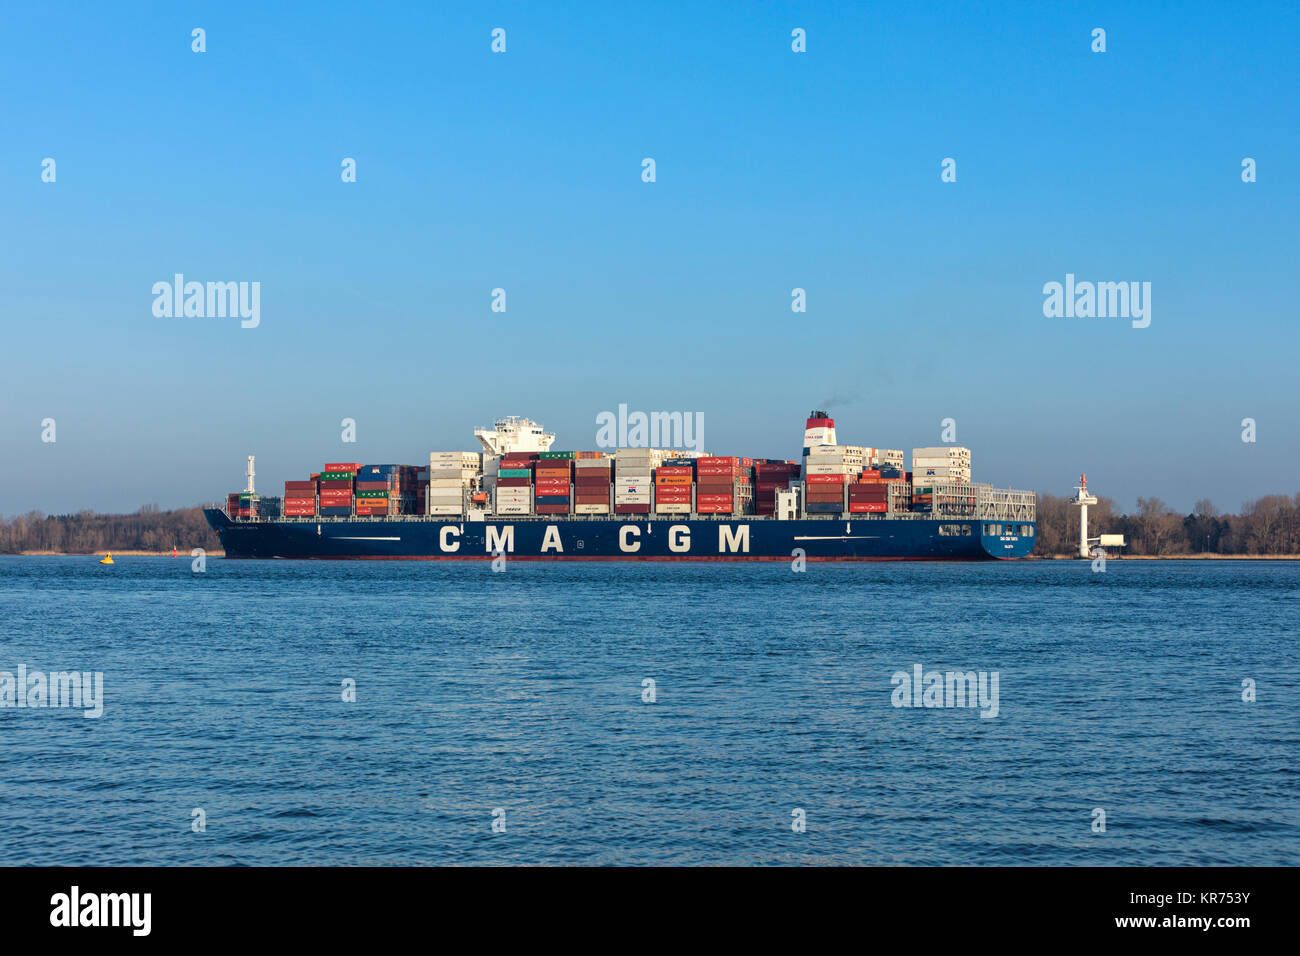 Stade, Germany - December 118, 2015: Container ship CMA CGM TANYA on Elbe river. The vessel can hold up to 9300 - Stock Image